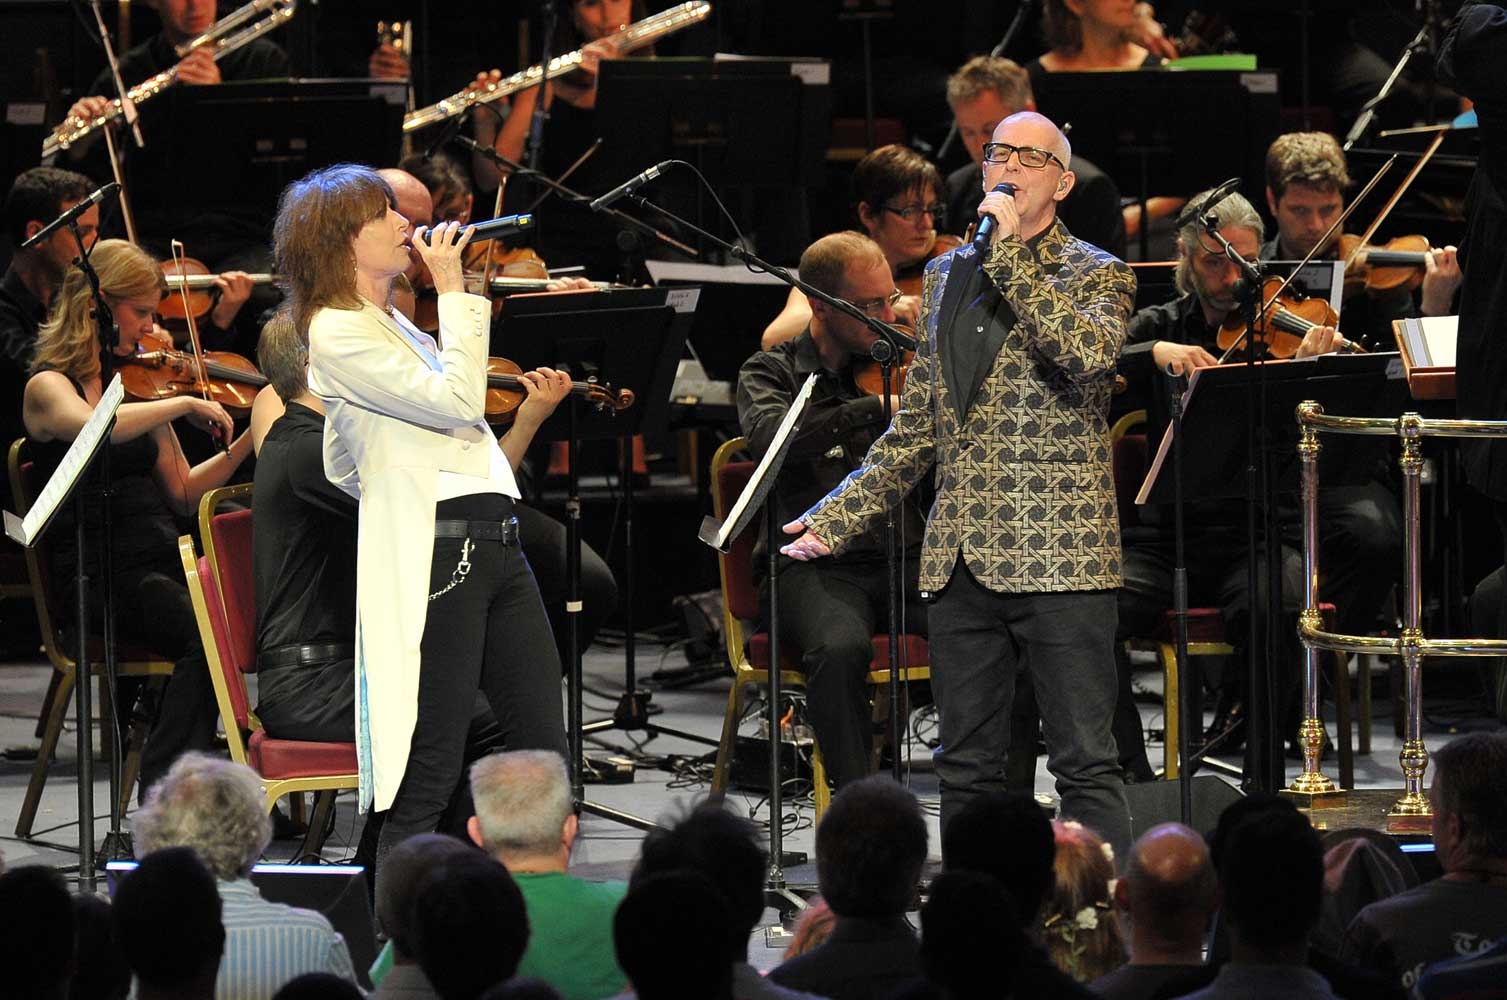 Chrissie Hynde and Neil Tennant perform with the BBC Concert Orchestra conducted by Dominic Wheeler at the BBC Proms 2014. Photograph: BBC/Chris Christodoulou